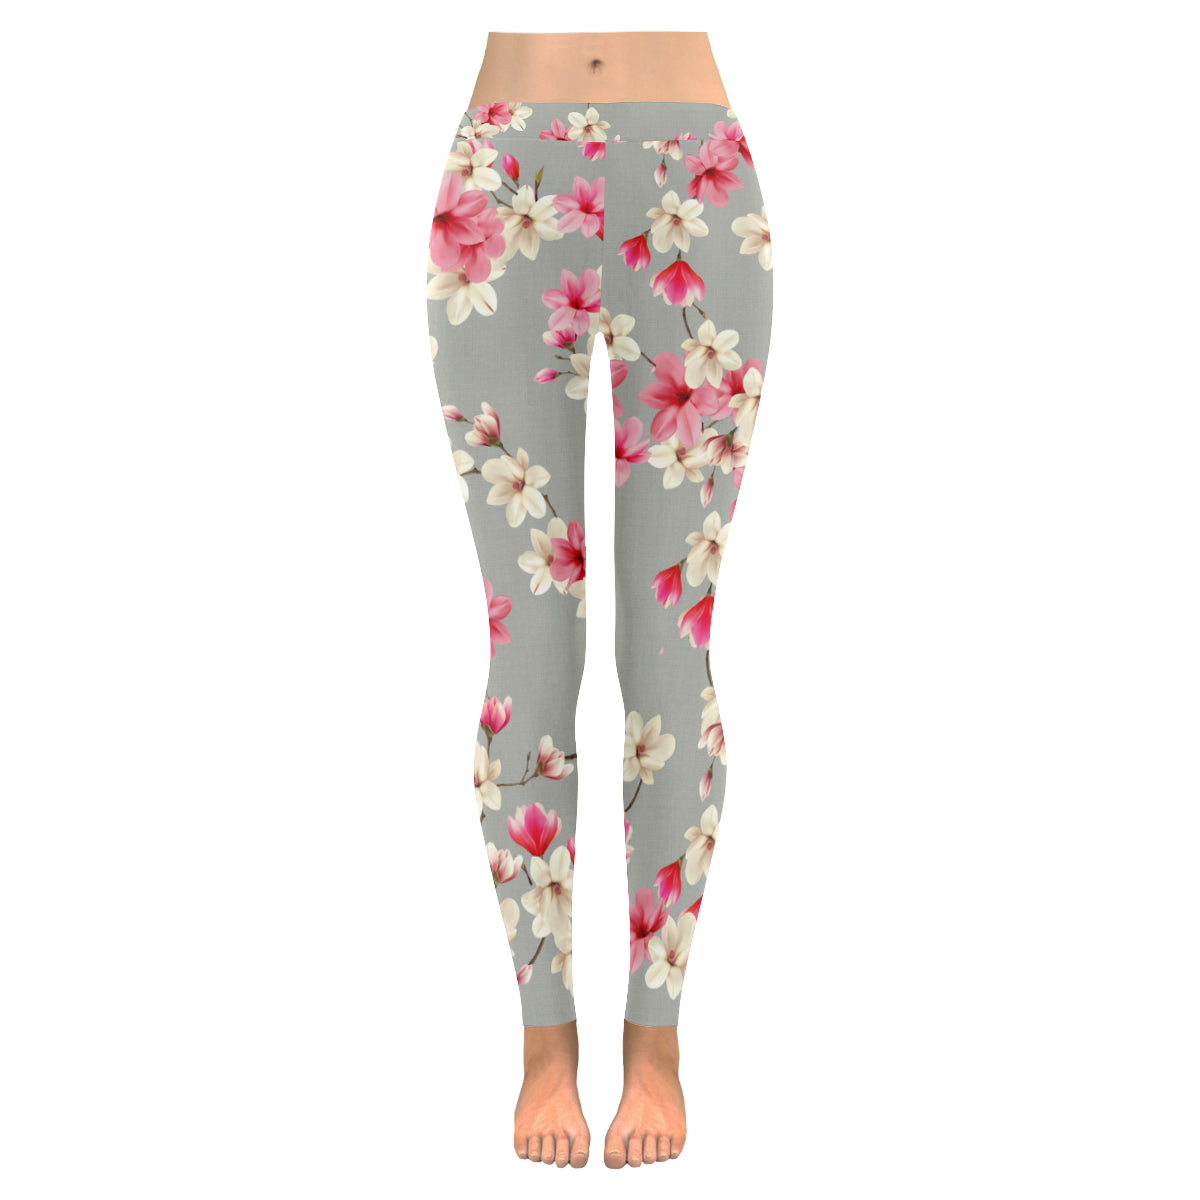 ENALIA Low Rise Leggings (Model L05)